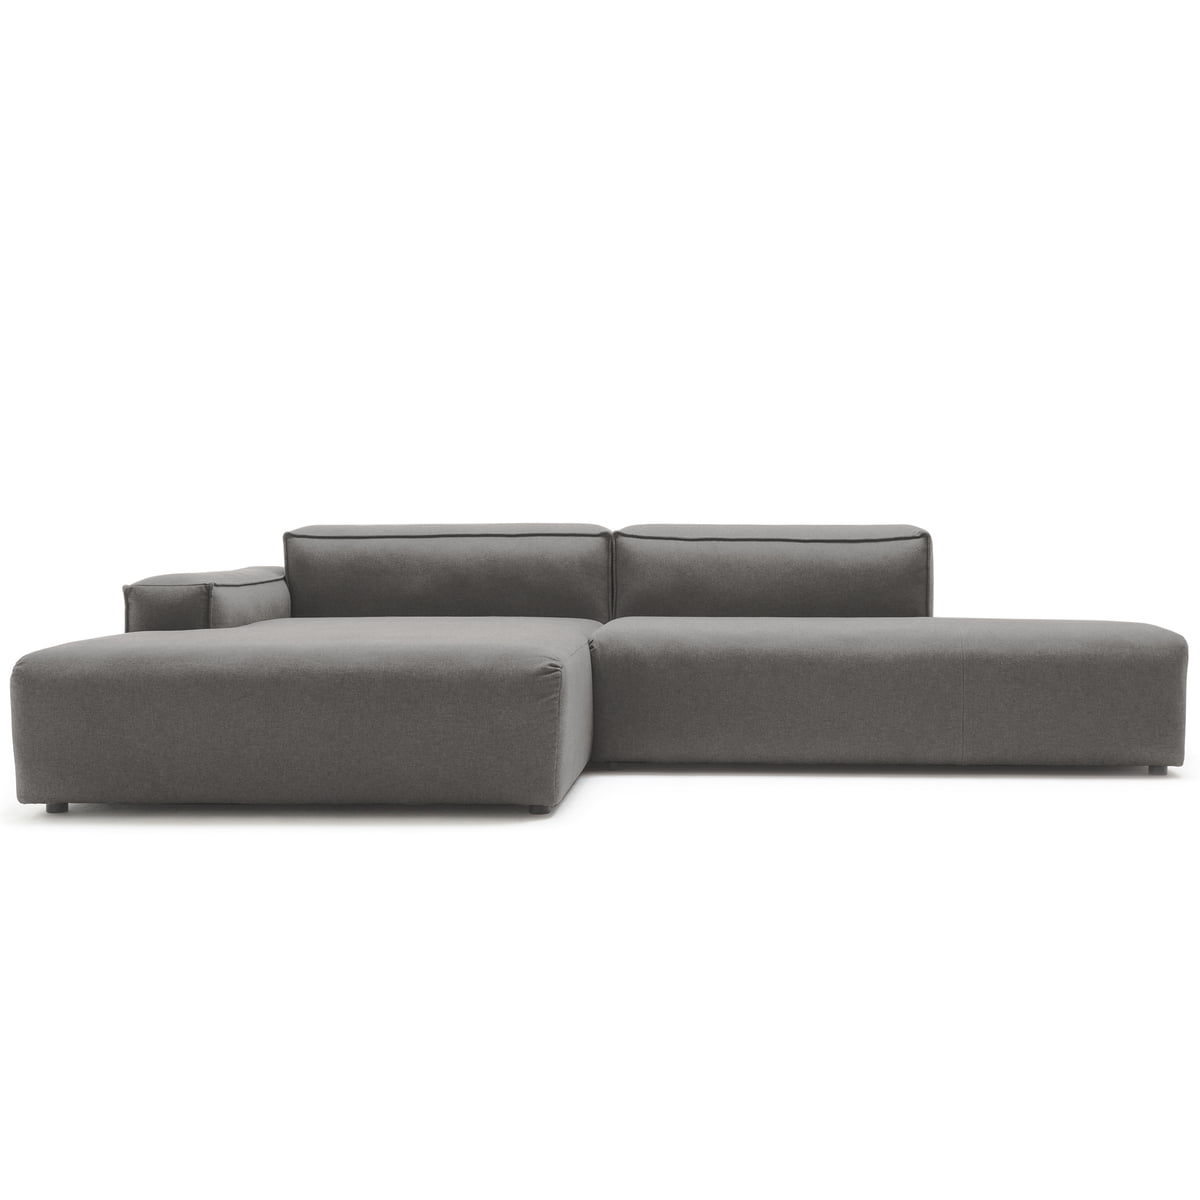 comfortable rolf benz sofa. 175 Sofa Corner, Left Side Low By Freistil With Cover In Graphite Grey (5246 Comfortable Rolf Benz T